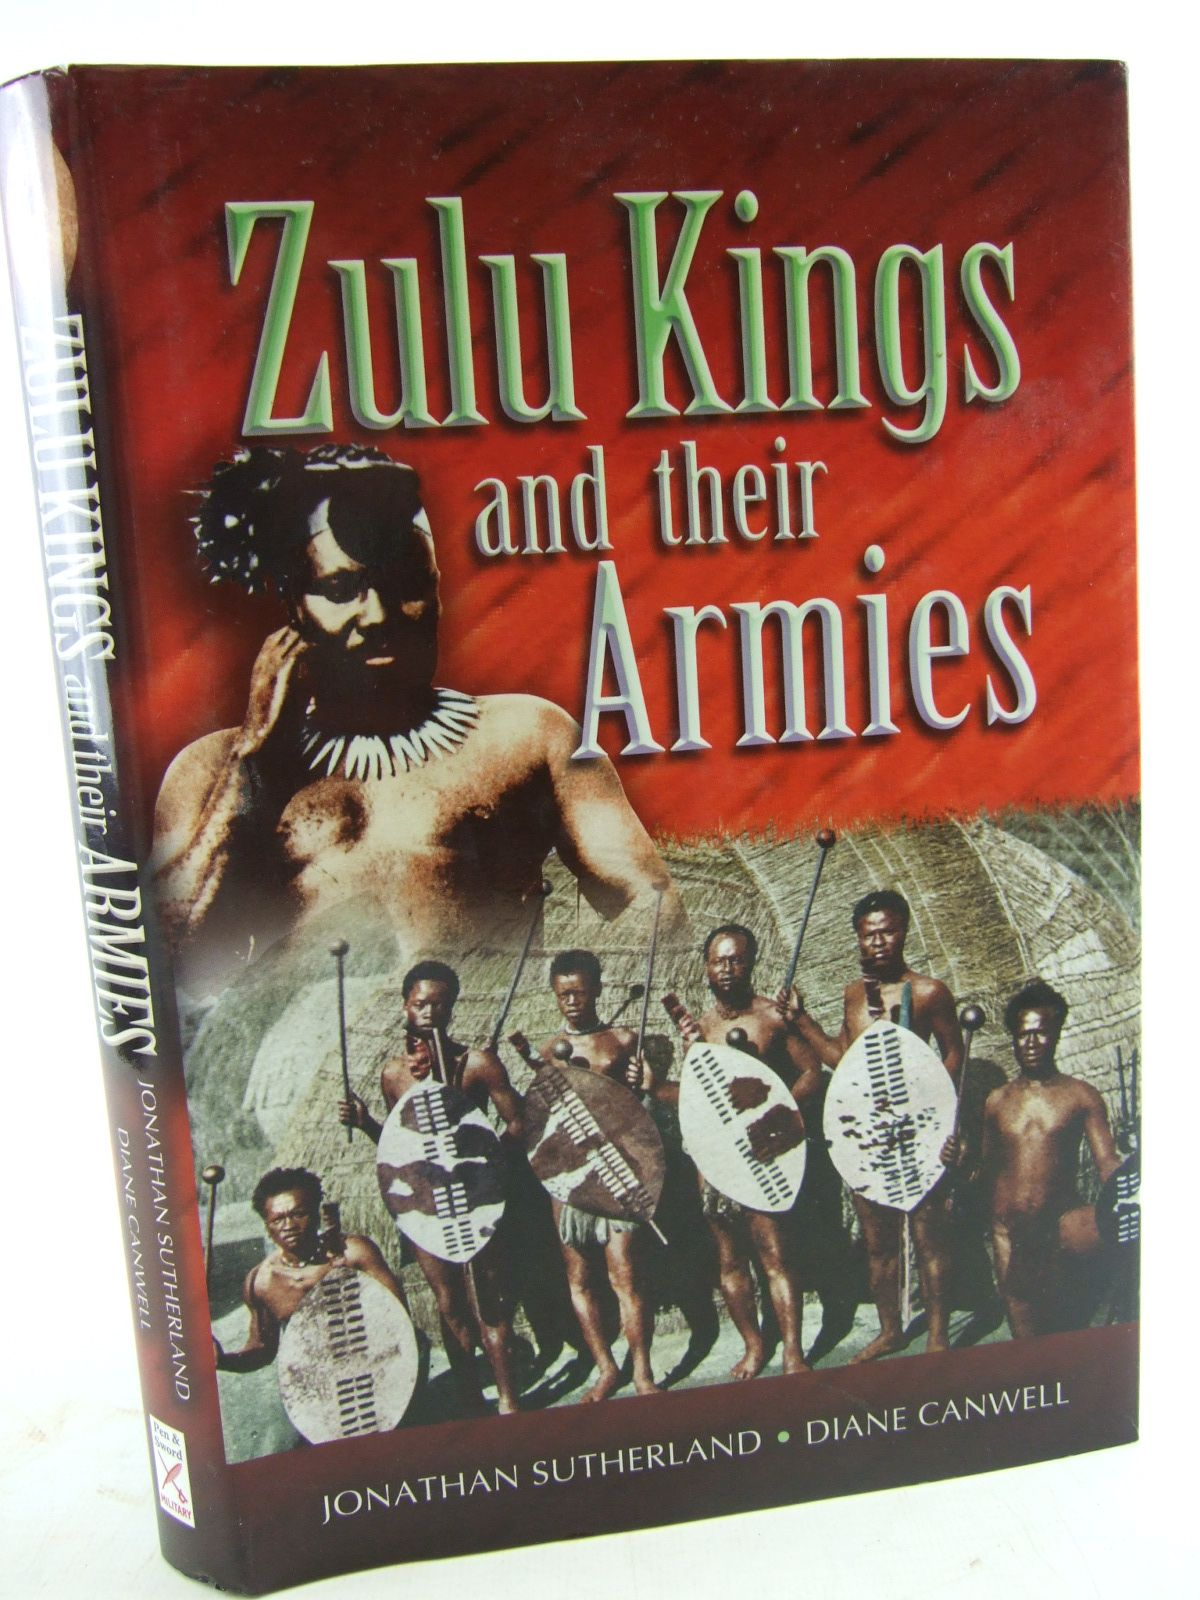 Photo of THE ZULU KINGS AND THEIR ARMIES written by Sutherland, Jonathan Canwell, Diane published by Pen & Sword Military (STOCK CODE: 1805524)  for sale by Stella & Rose's Books